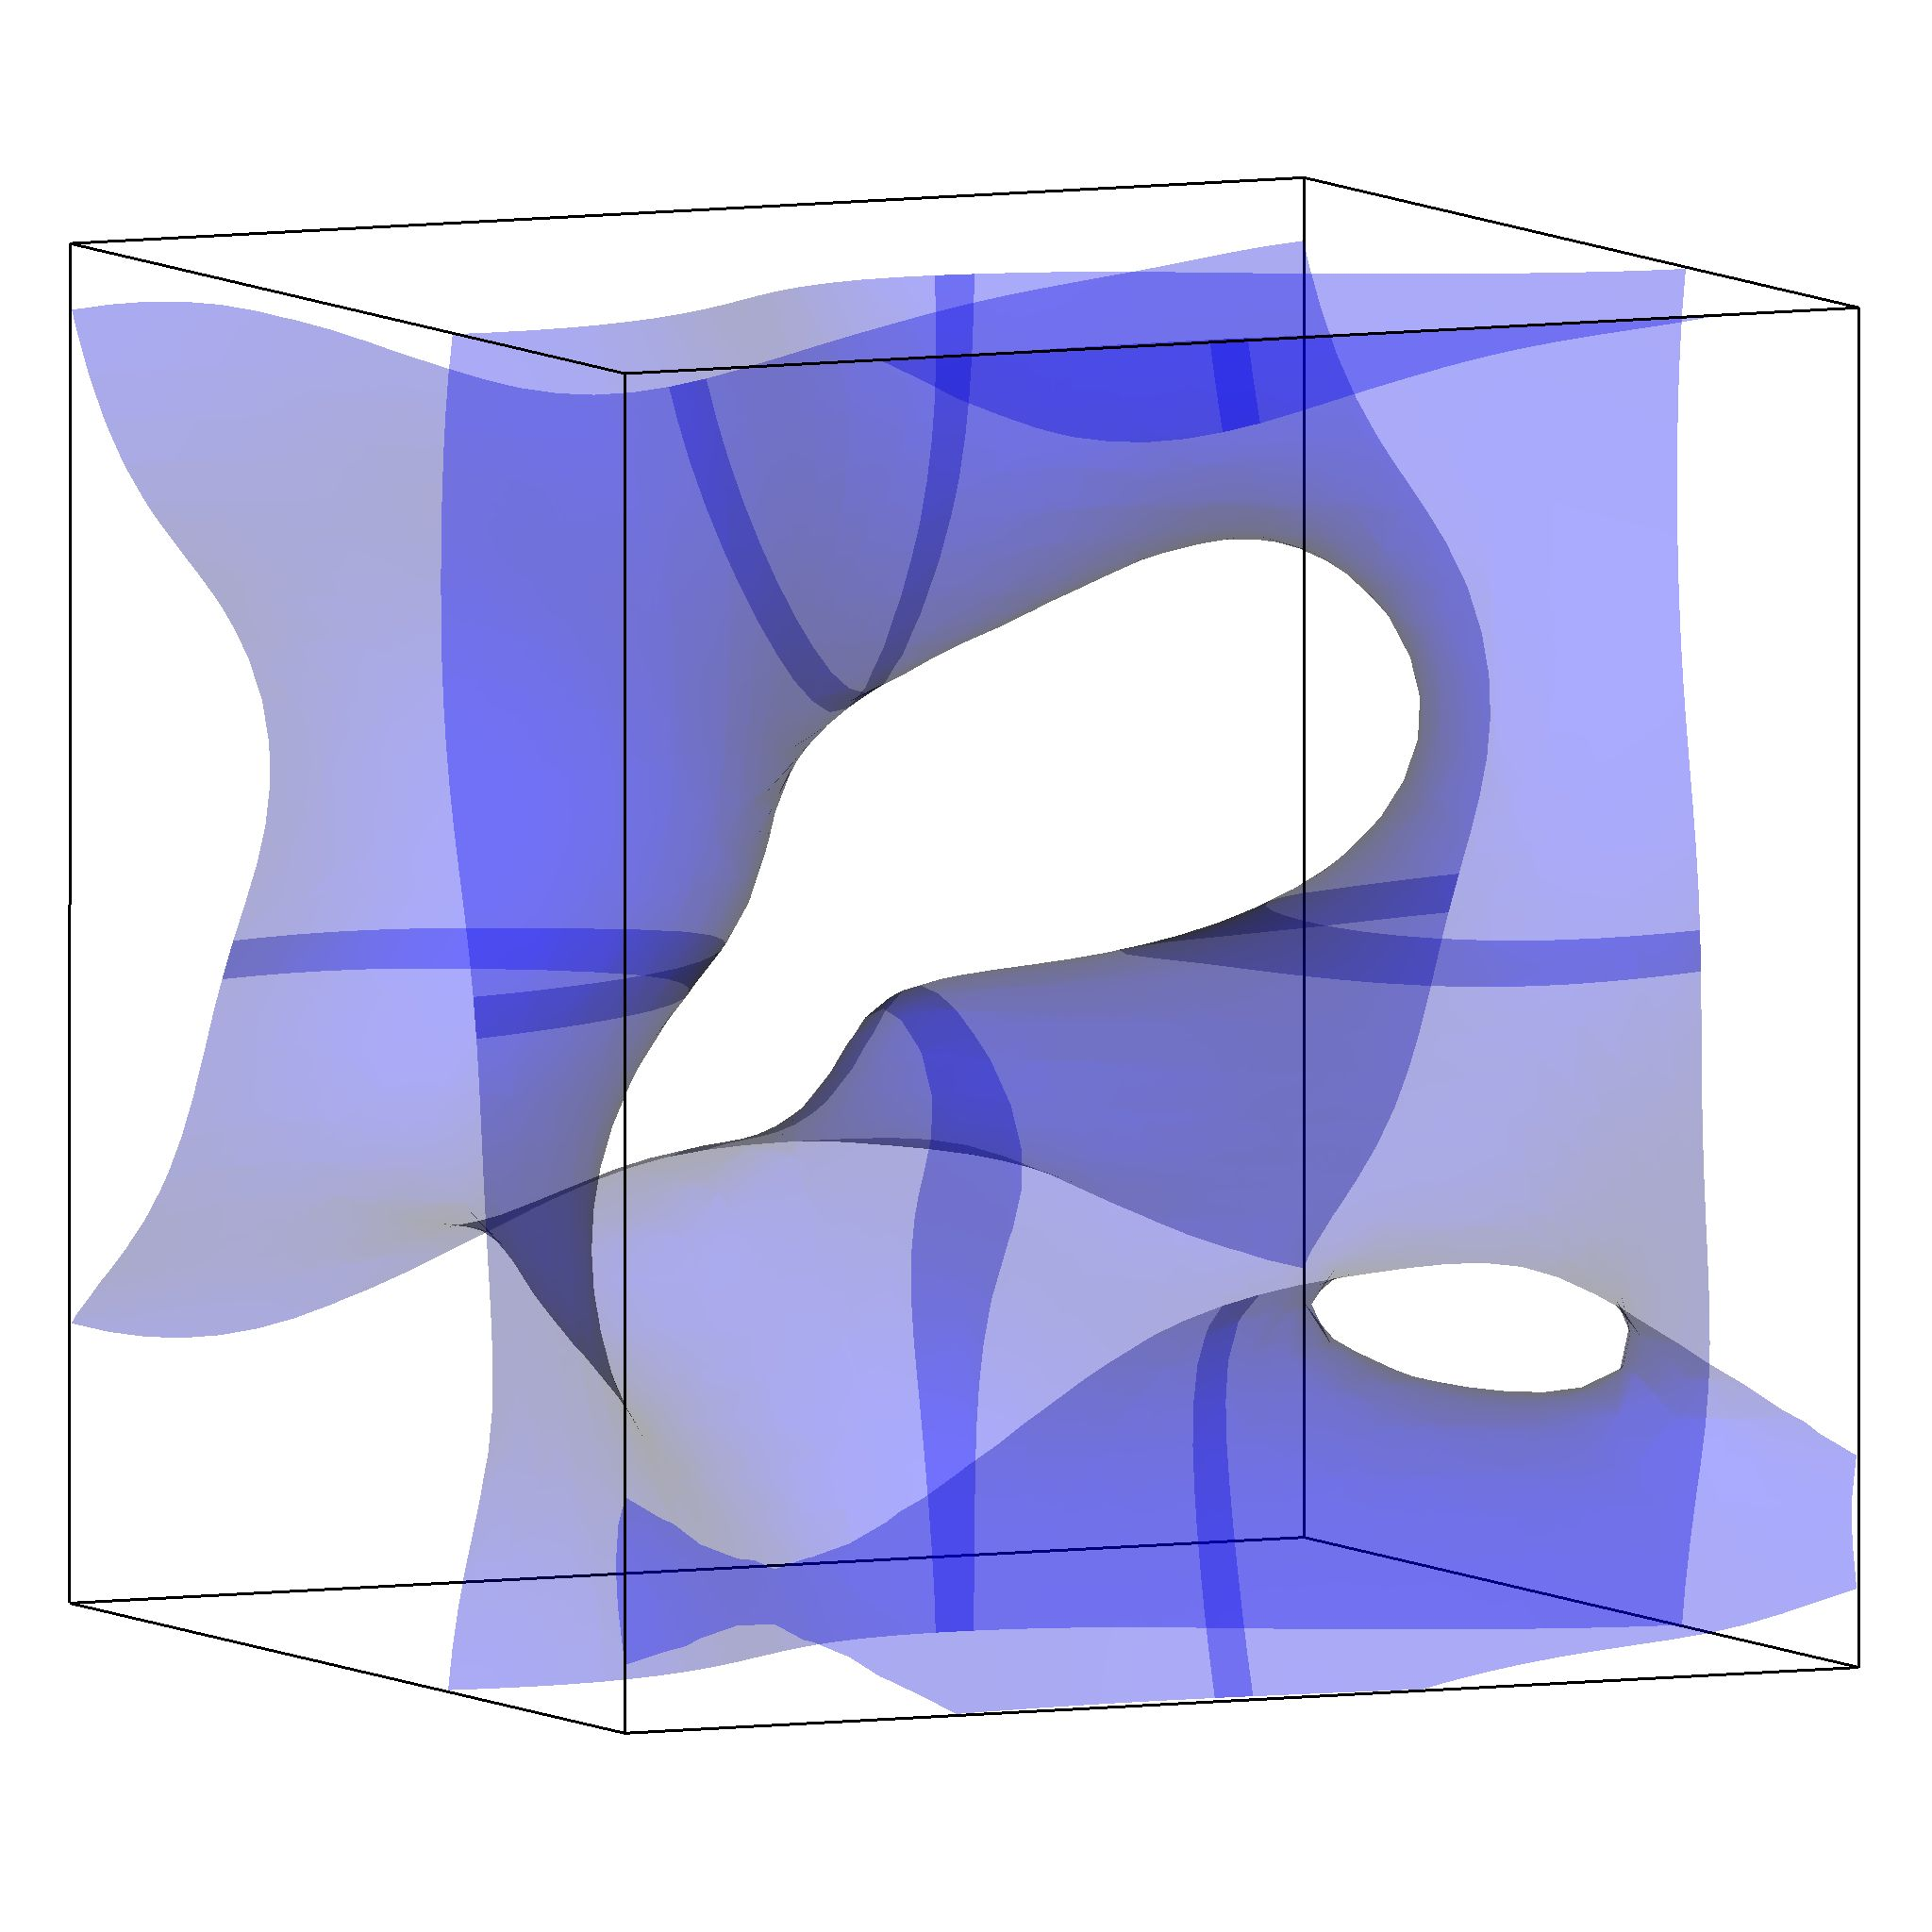 Visualisation of an isosurface in VisIt with overlapping ghost zones.